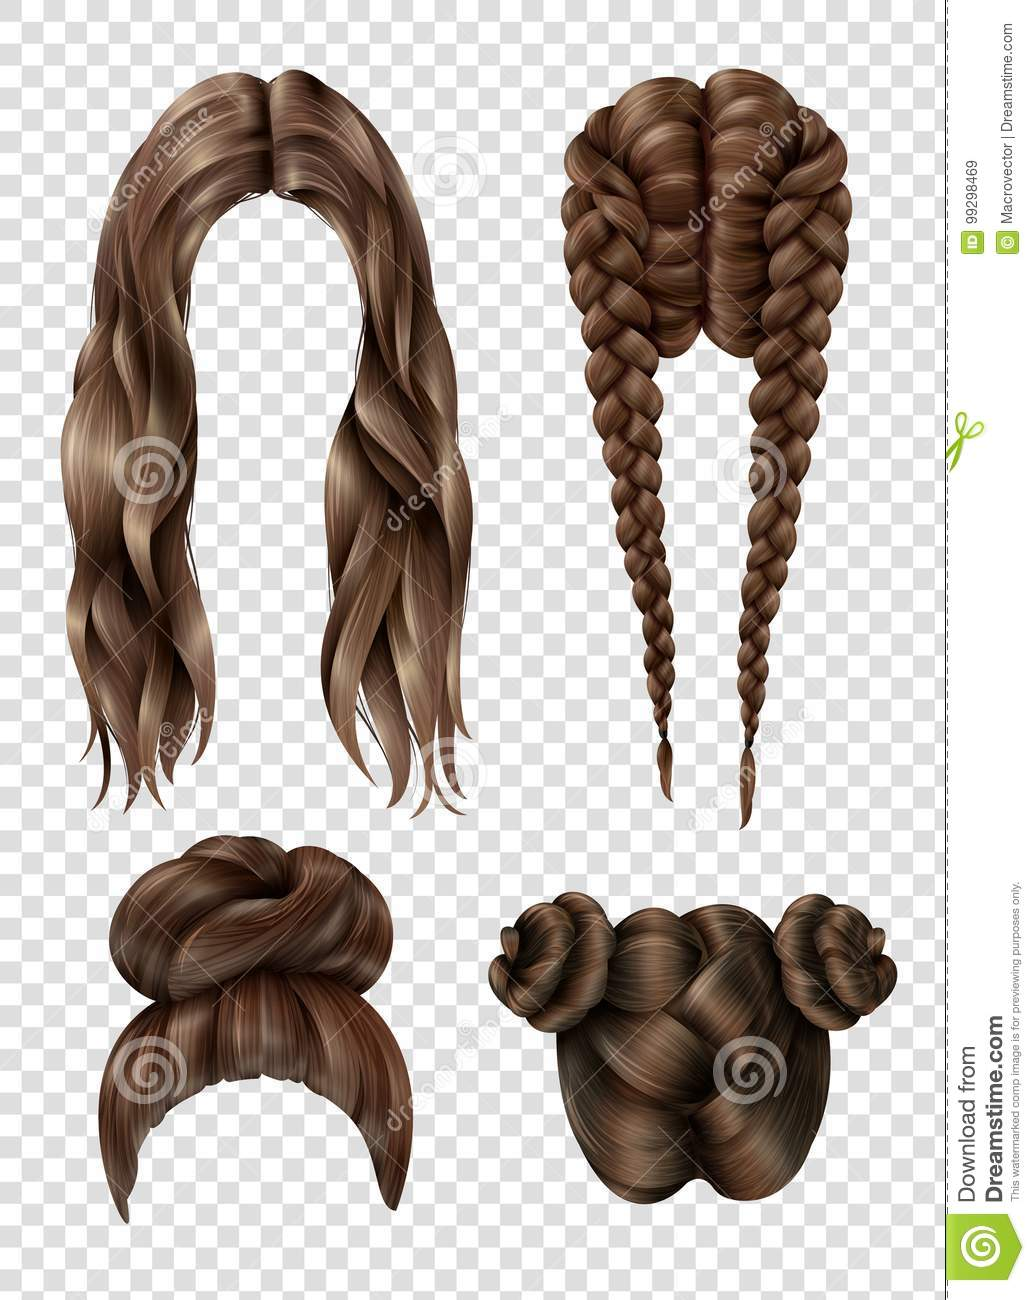 Female Hairstyles Set Stock Vector Illustration Of Haircut 99298469